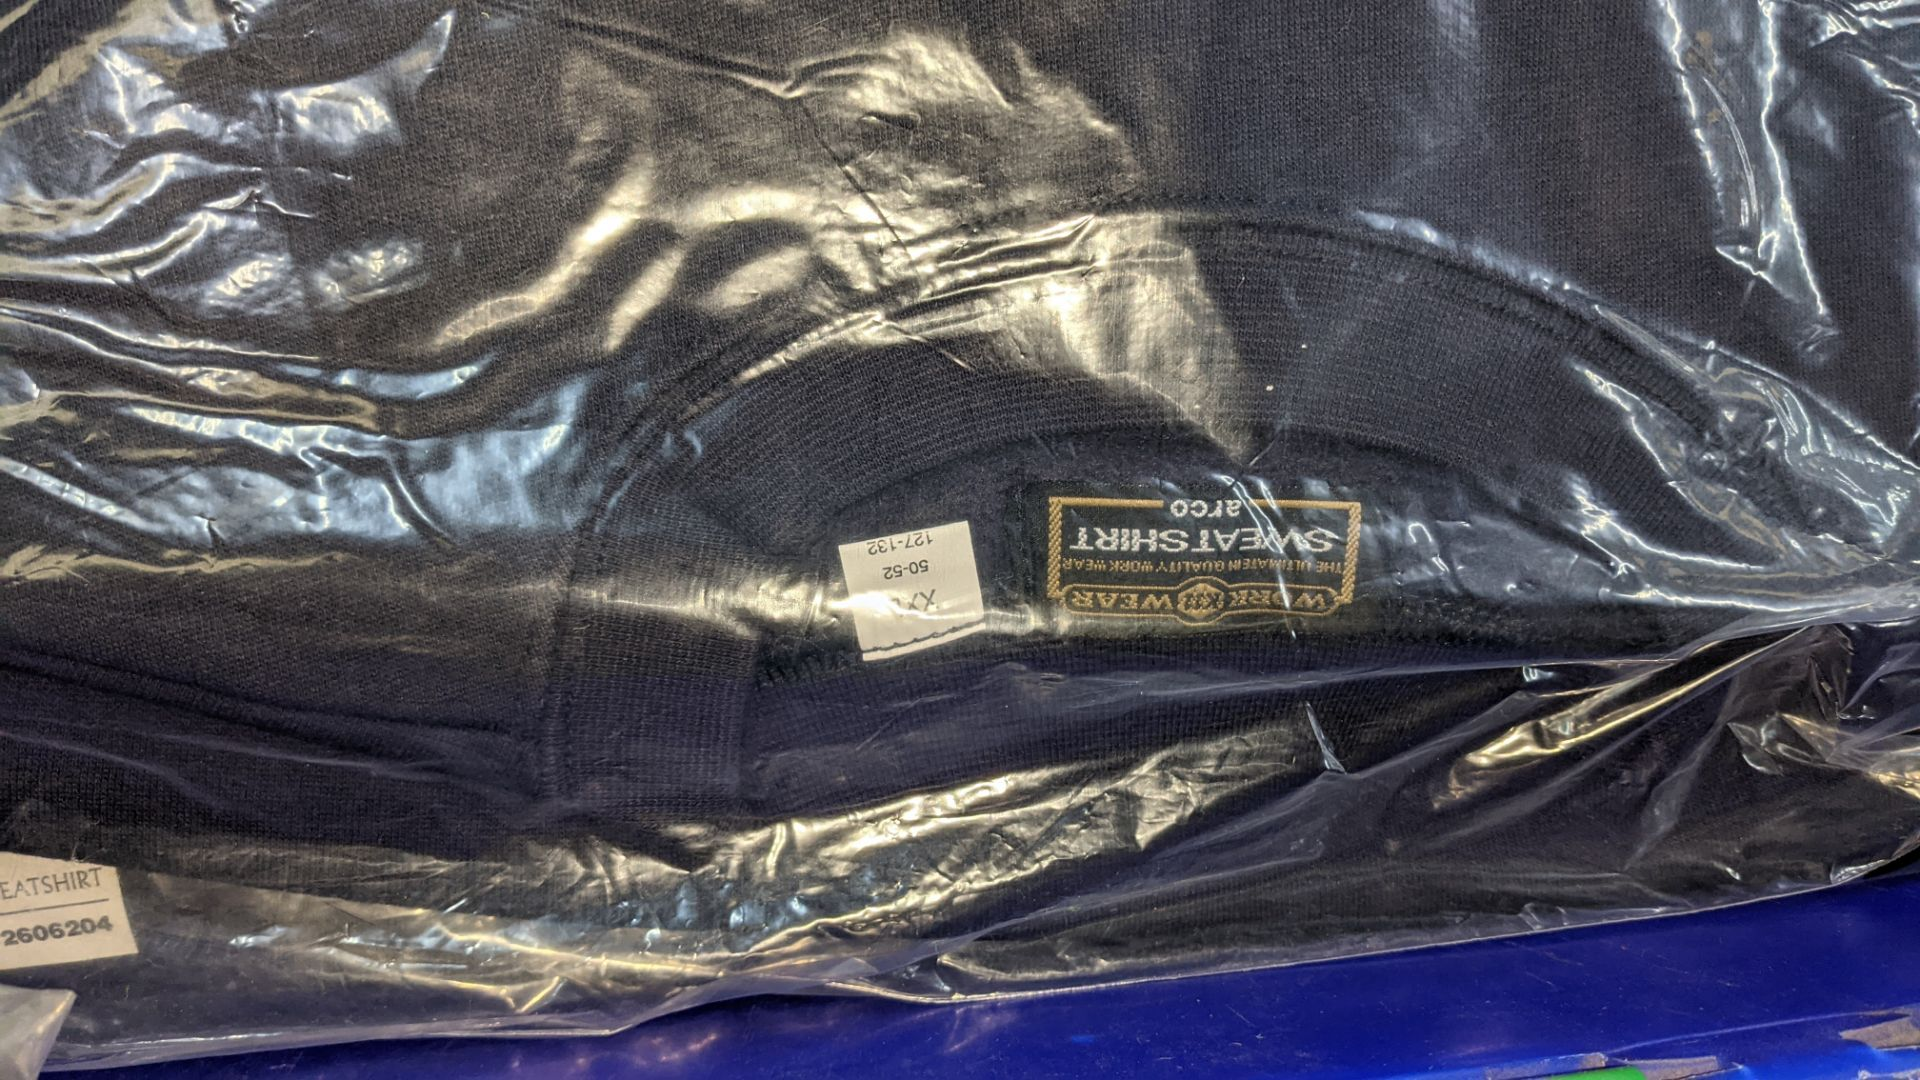 15 off workwear blue sweatshirts - the contents of 1 crate. NB crate excluded - Image 3 of 6